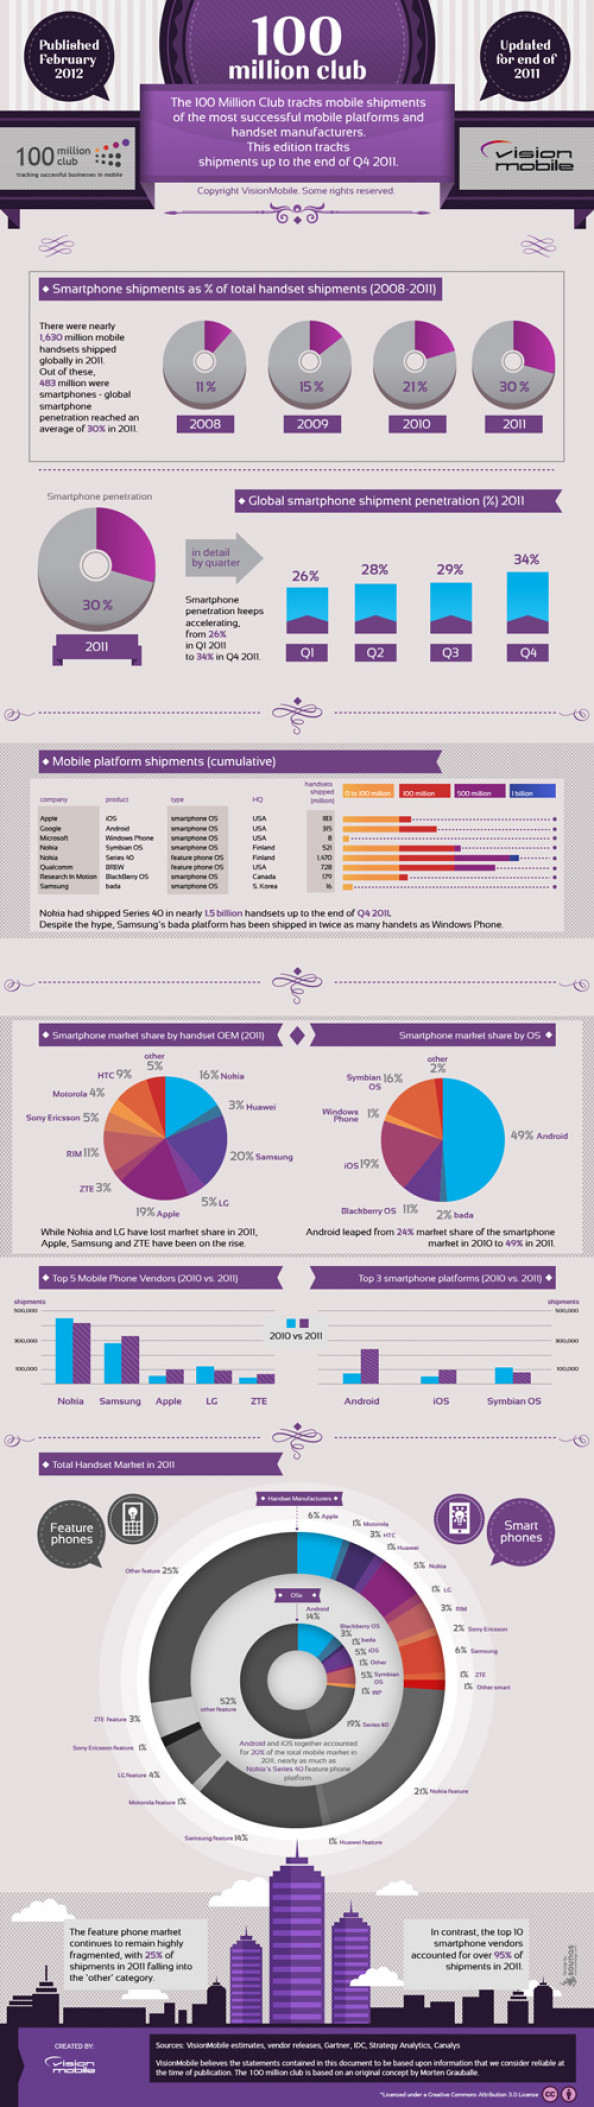 Top facts &amp; figures from the 2011 smartphone market Infographic